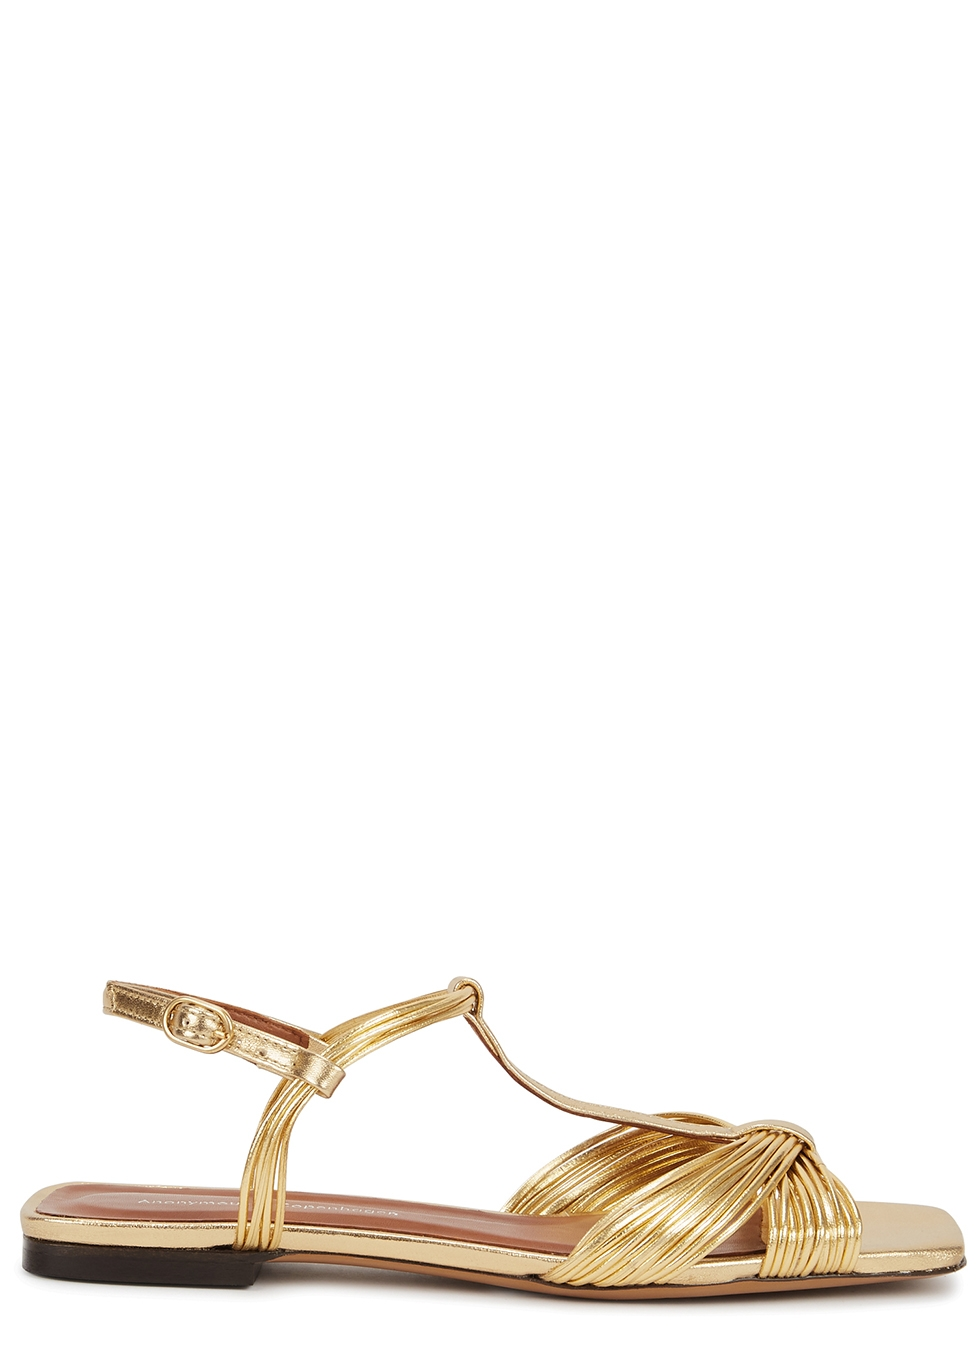 Alessandra gold leather sandals